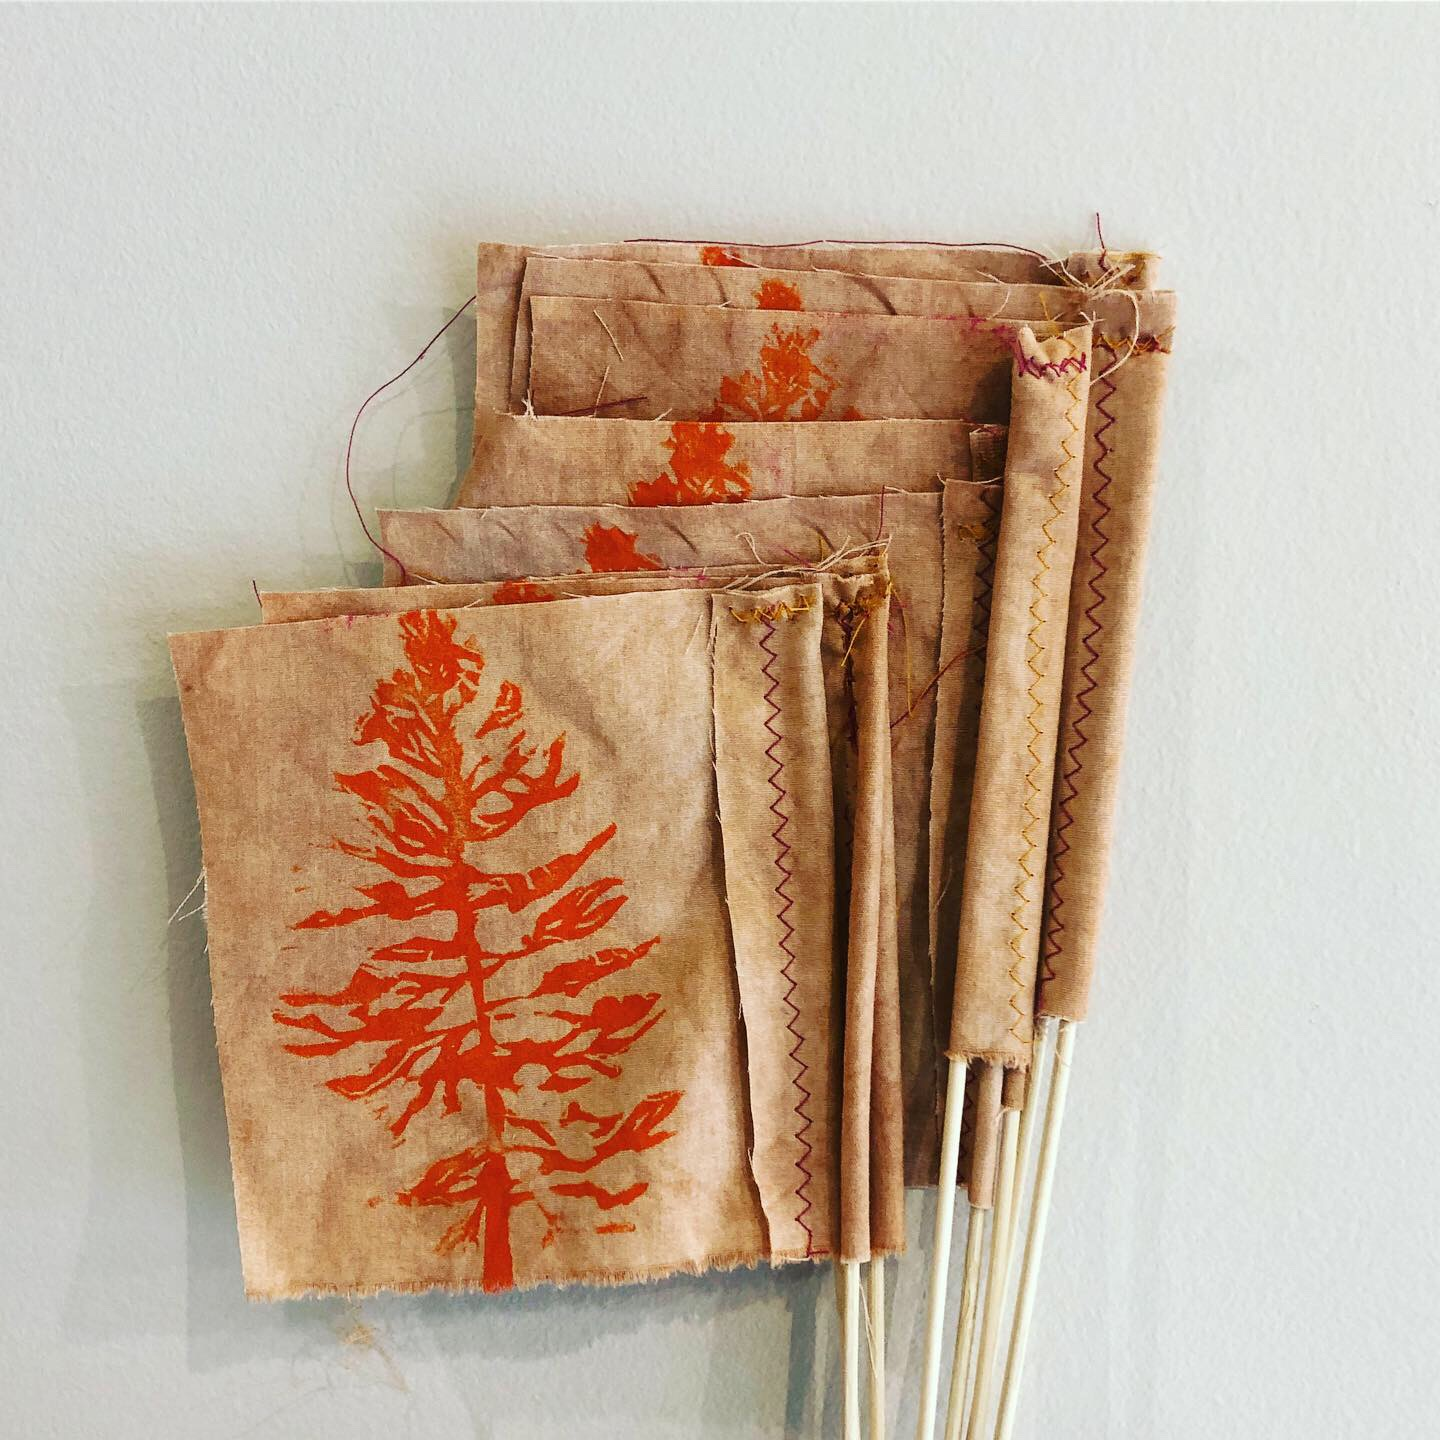 Flags made from dyed tan fabric sewn to wooden sticks. The fabric flags have an orange image of a tree printed on them.